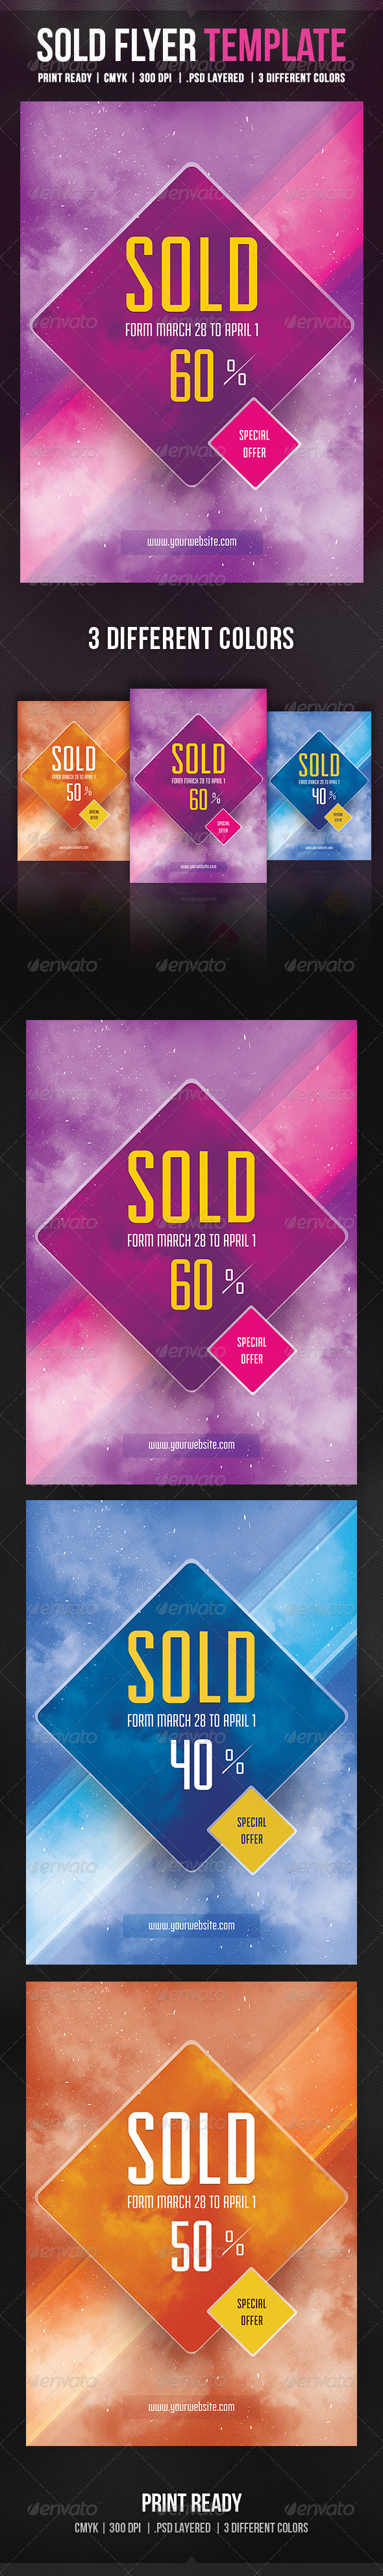 GraphicRiver Sold Flyer Template 5611721